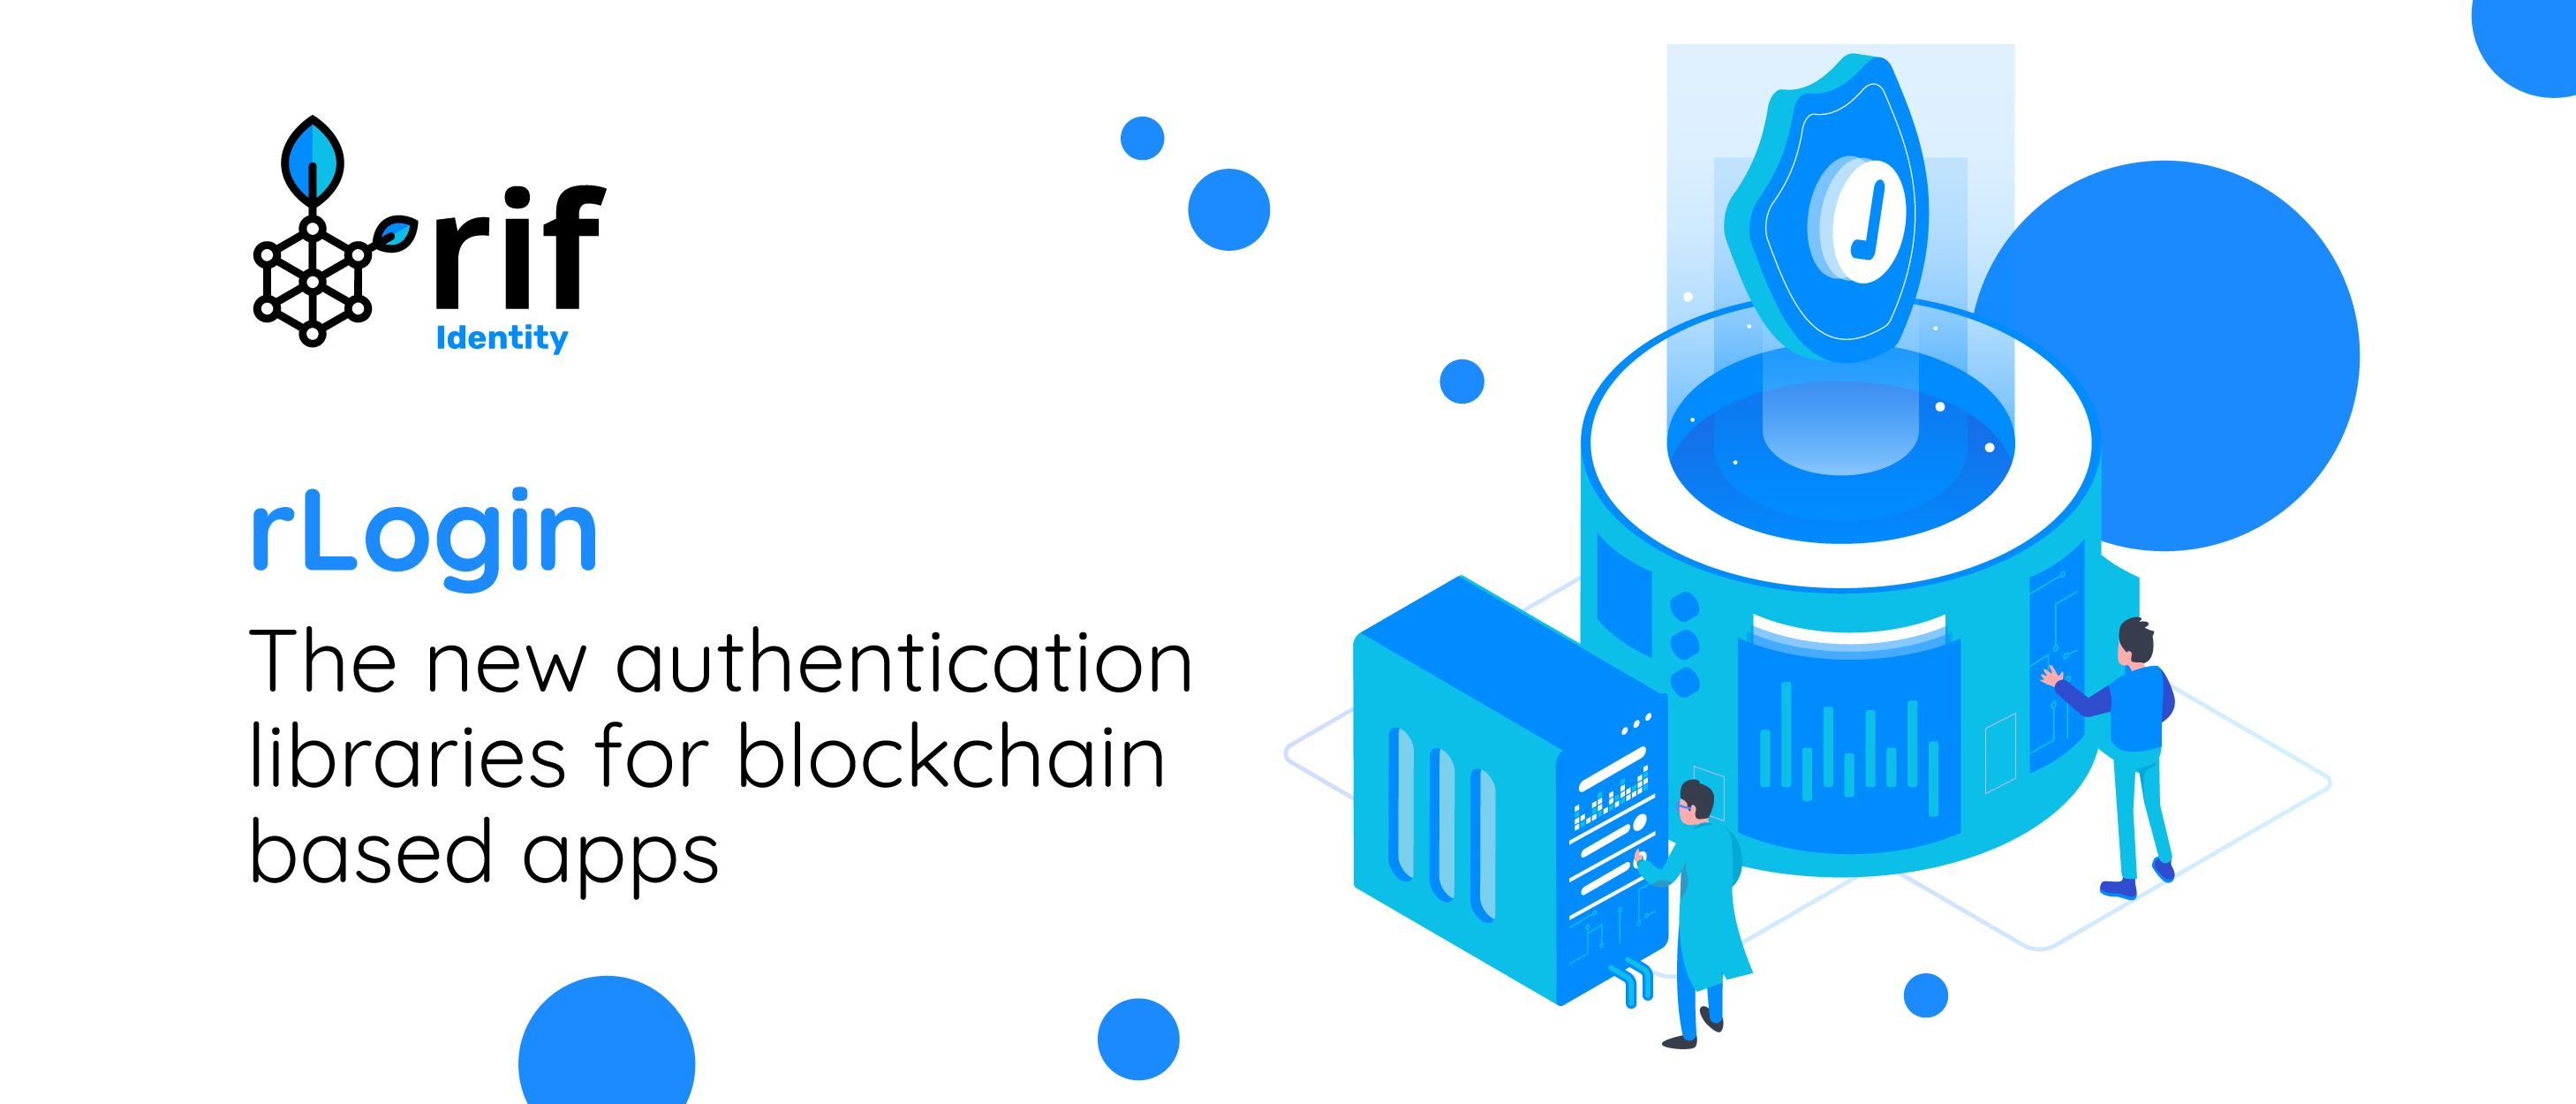 /rlogin-the-new-authentication-libraries-for-blockchain-based-apps-h619330z feature image